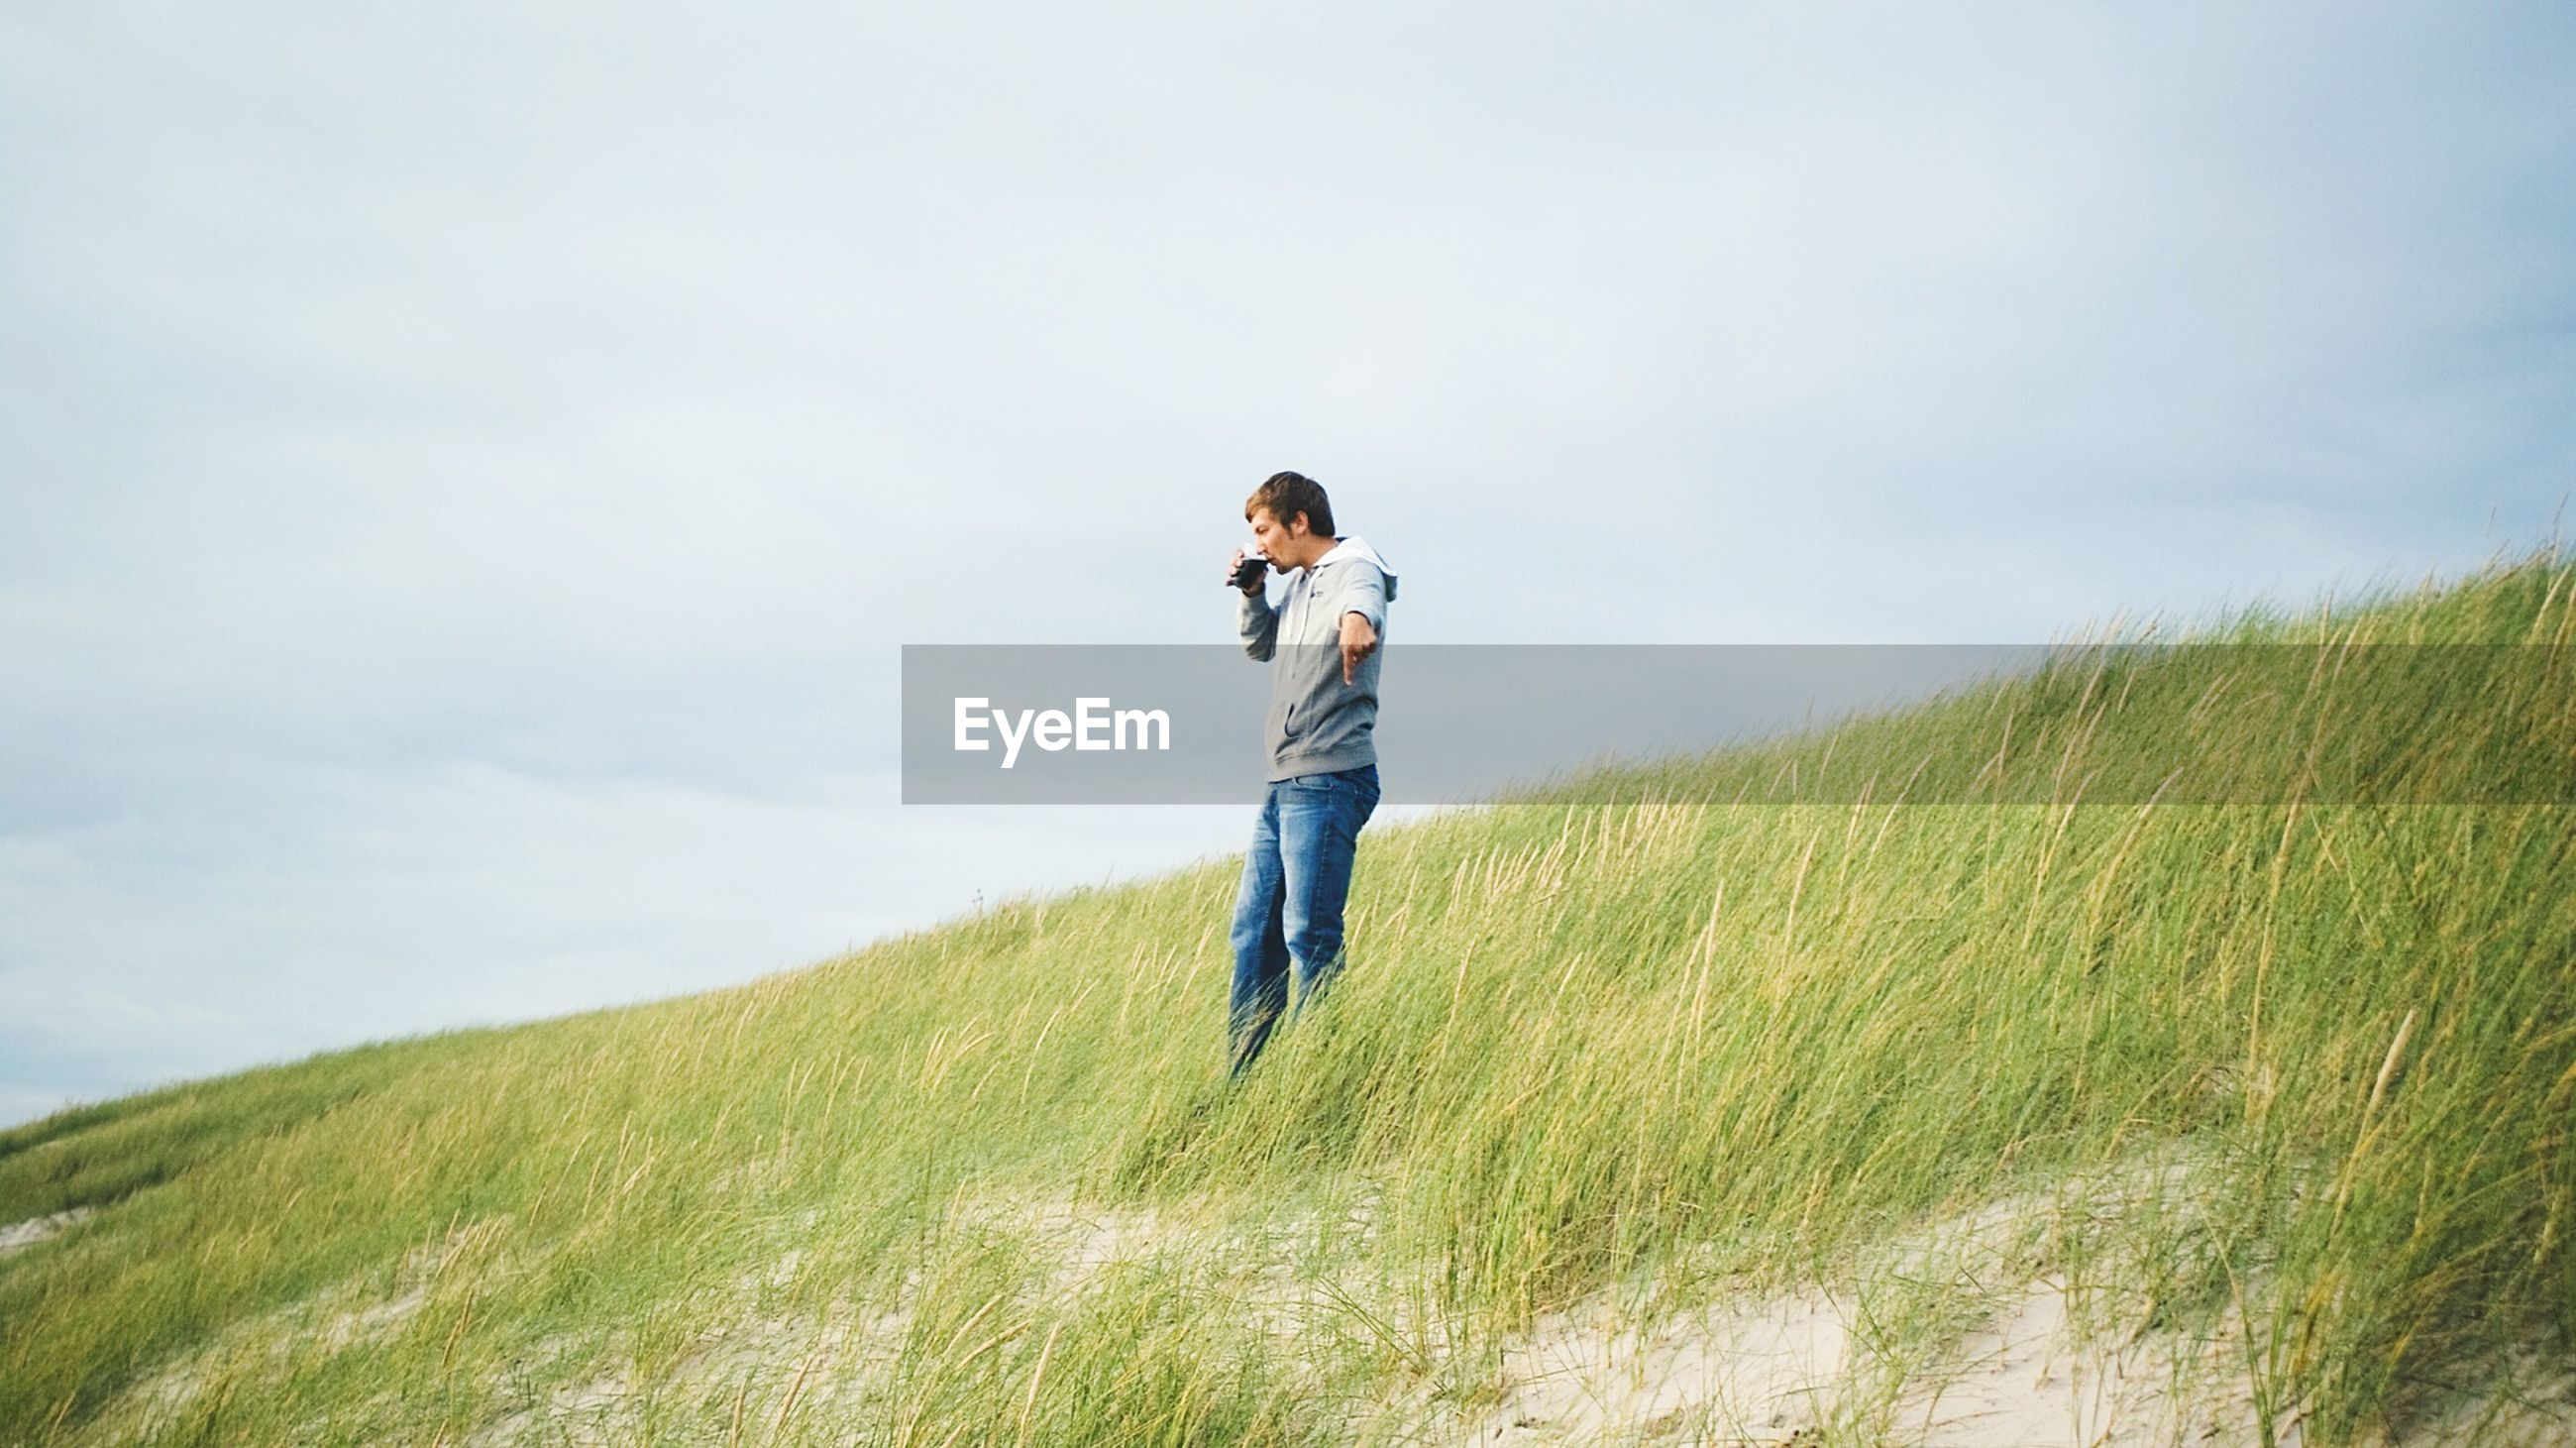 Side view of man drinking on grassy field against sky at wriedel